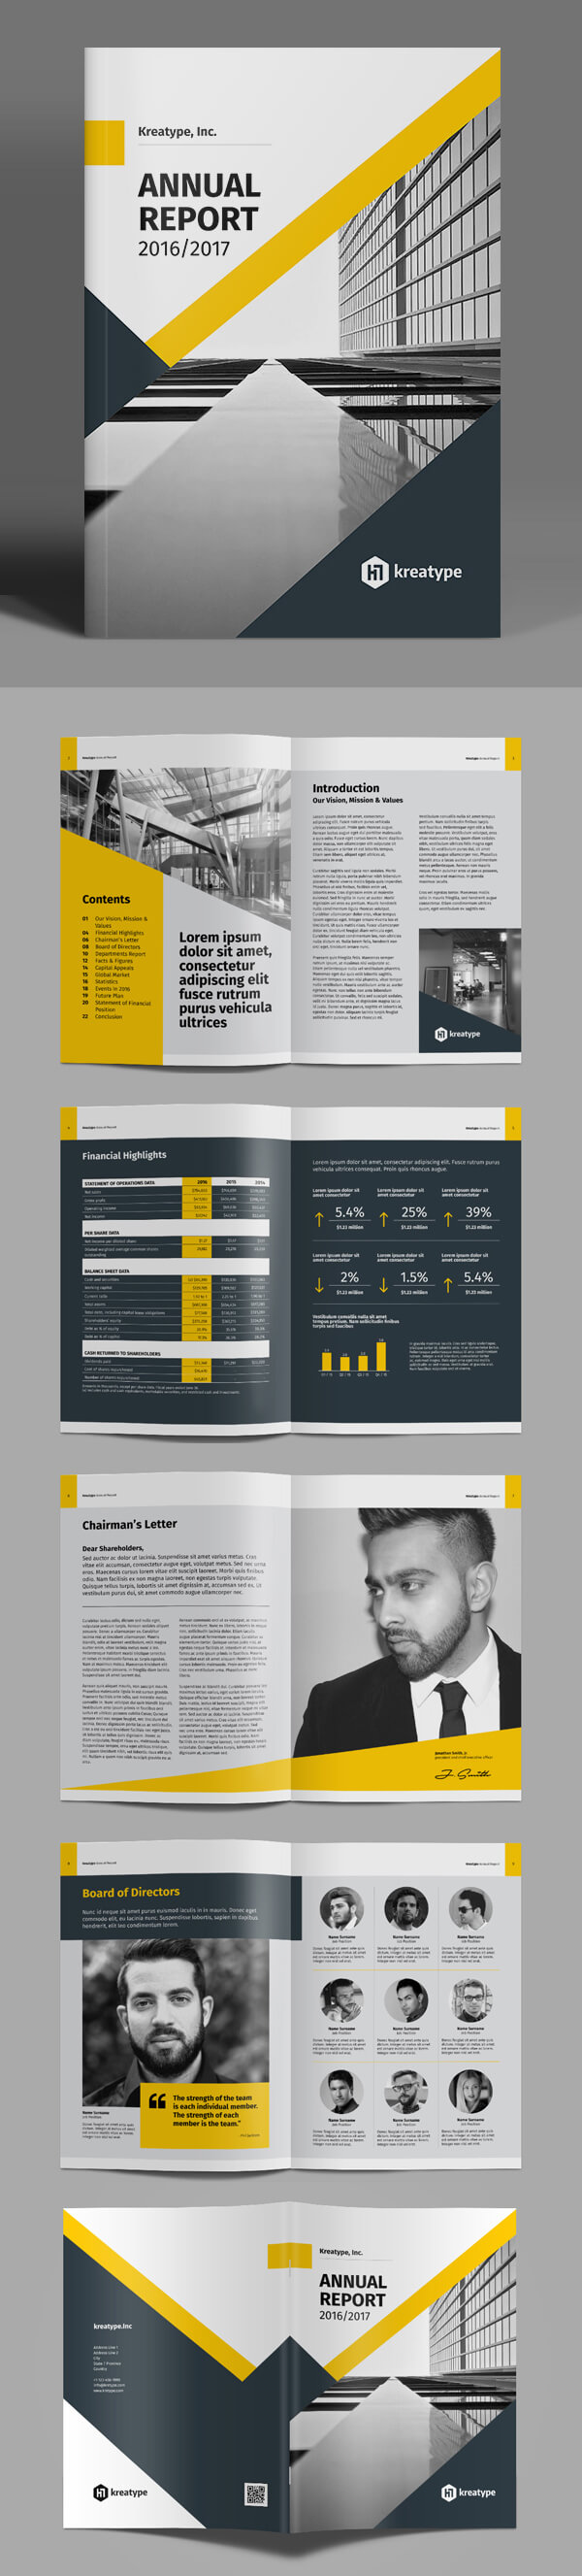 100 Professional Corporate Brochure Templates | Design in Chairman's Annual Report Template